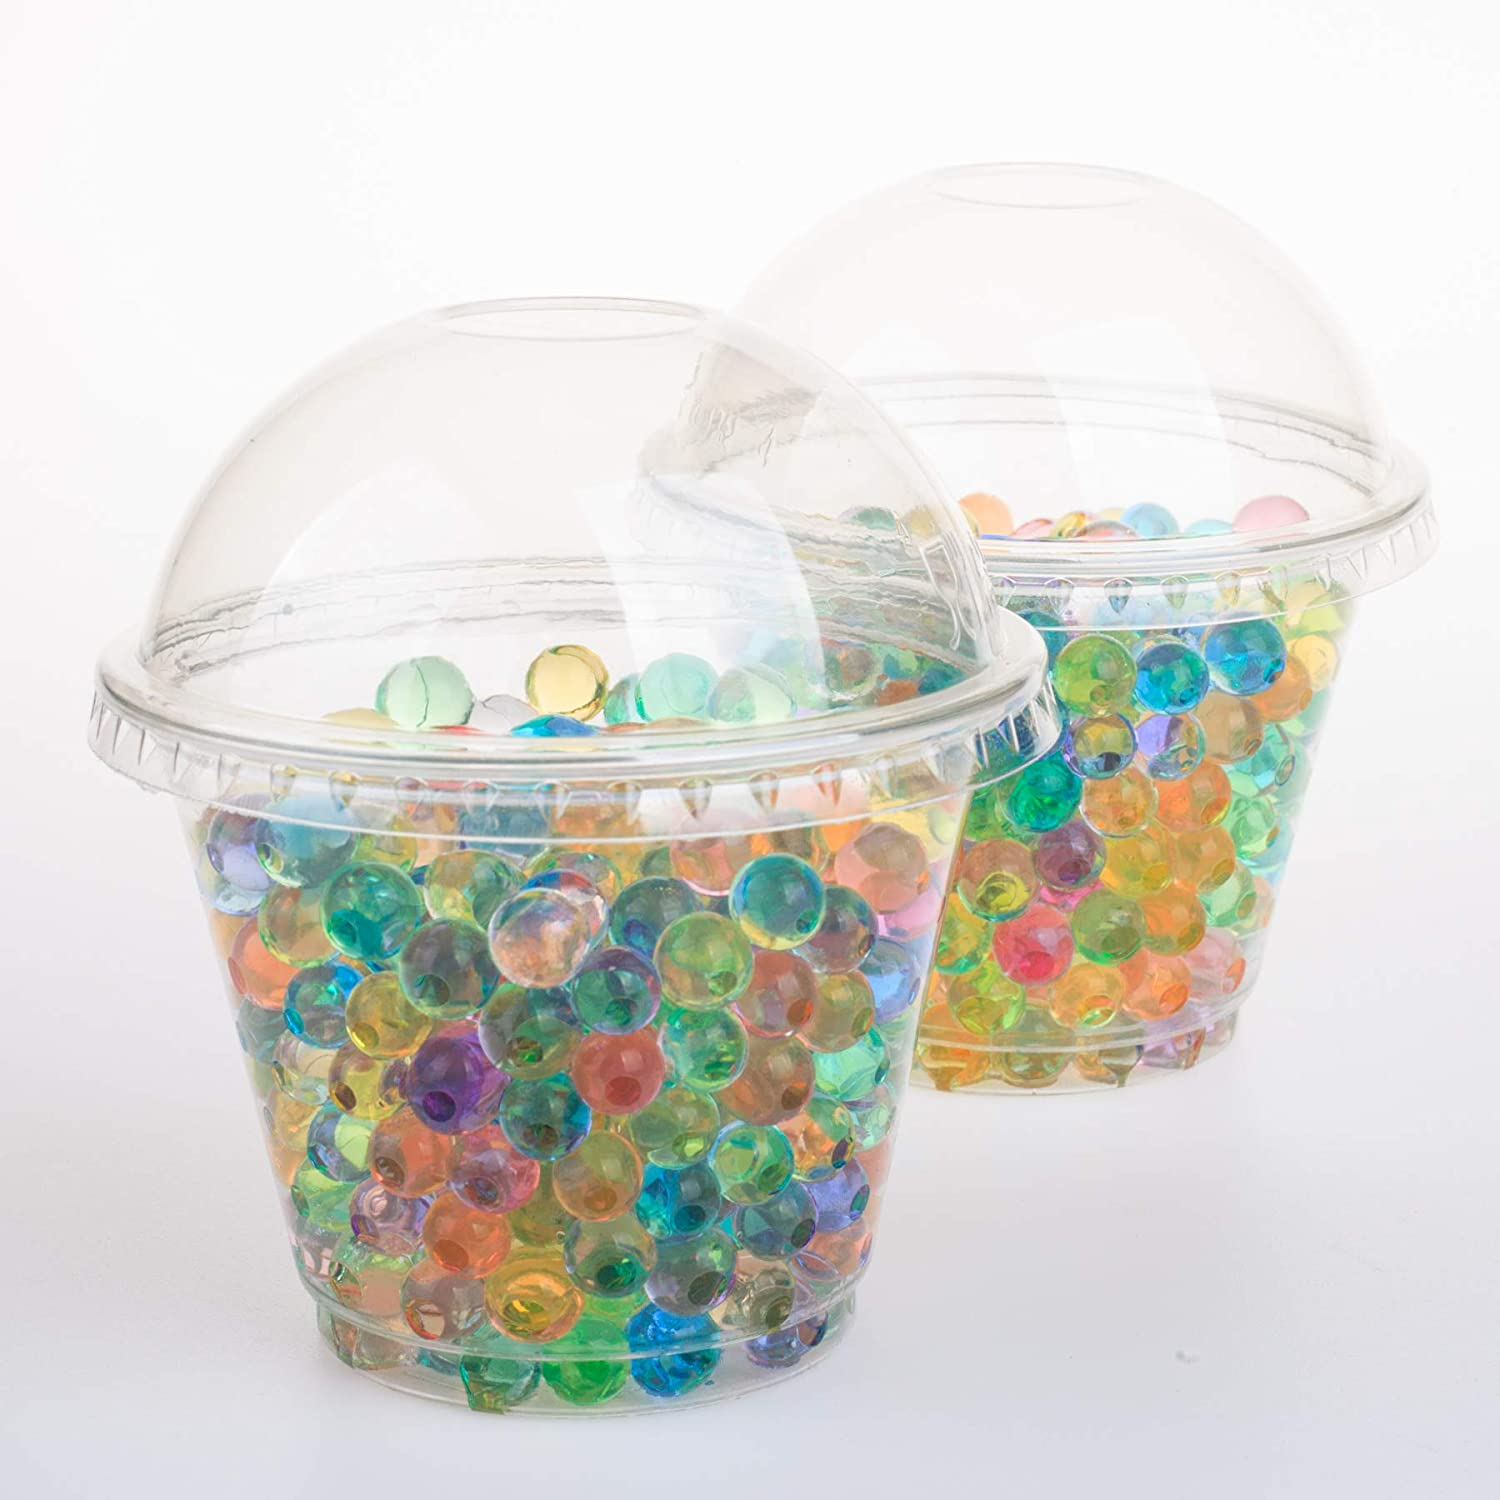 GOLDEN APPLE Cup series, 9oz Clear Plastic cups with Dome lids no hole 25sets, BPA Free